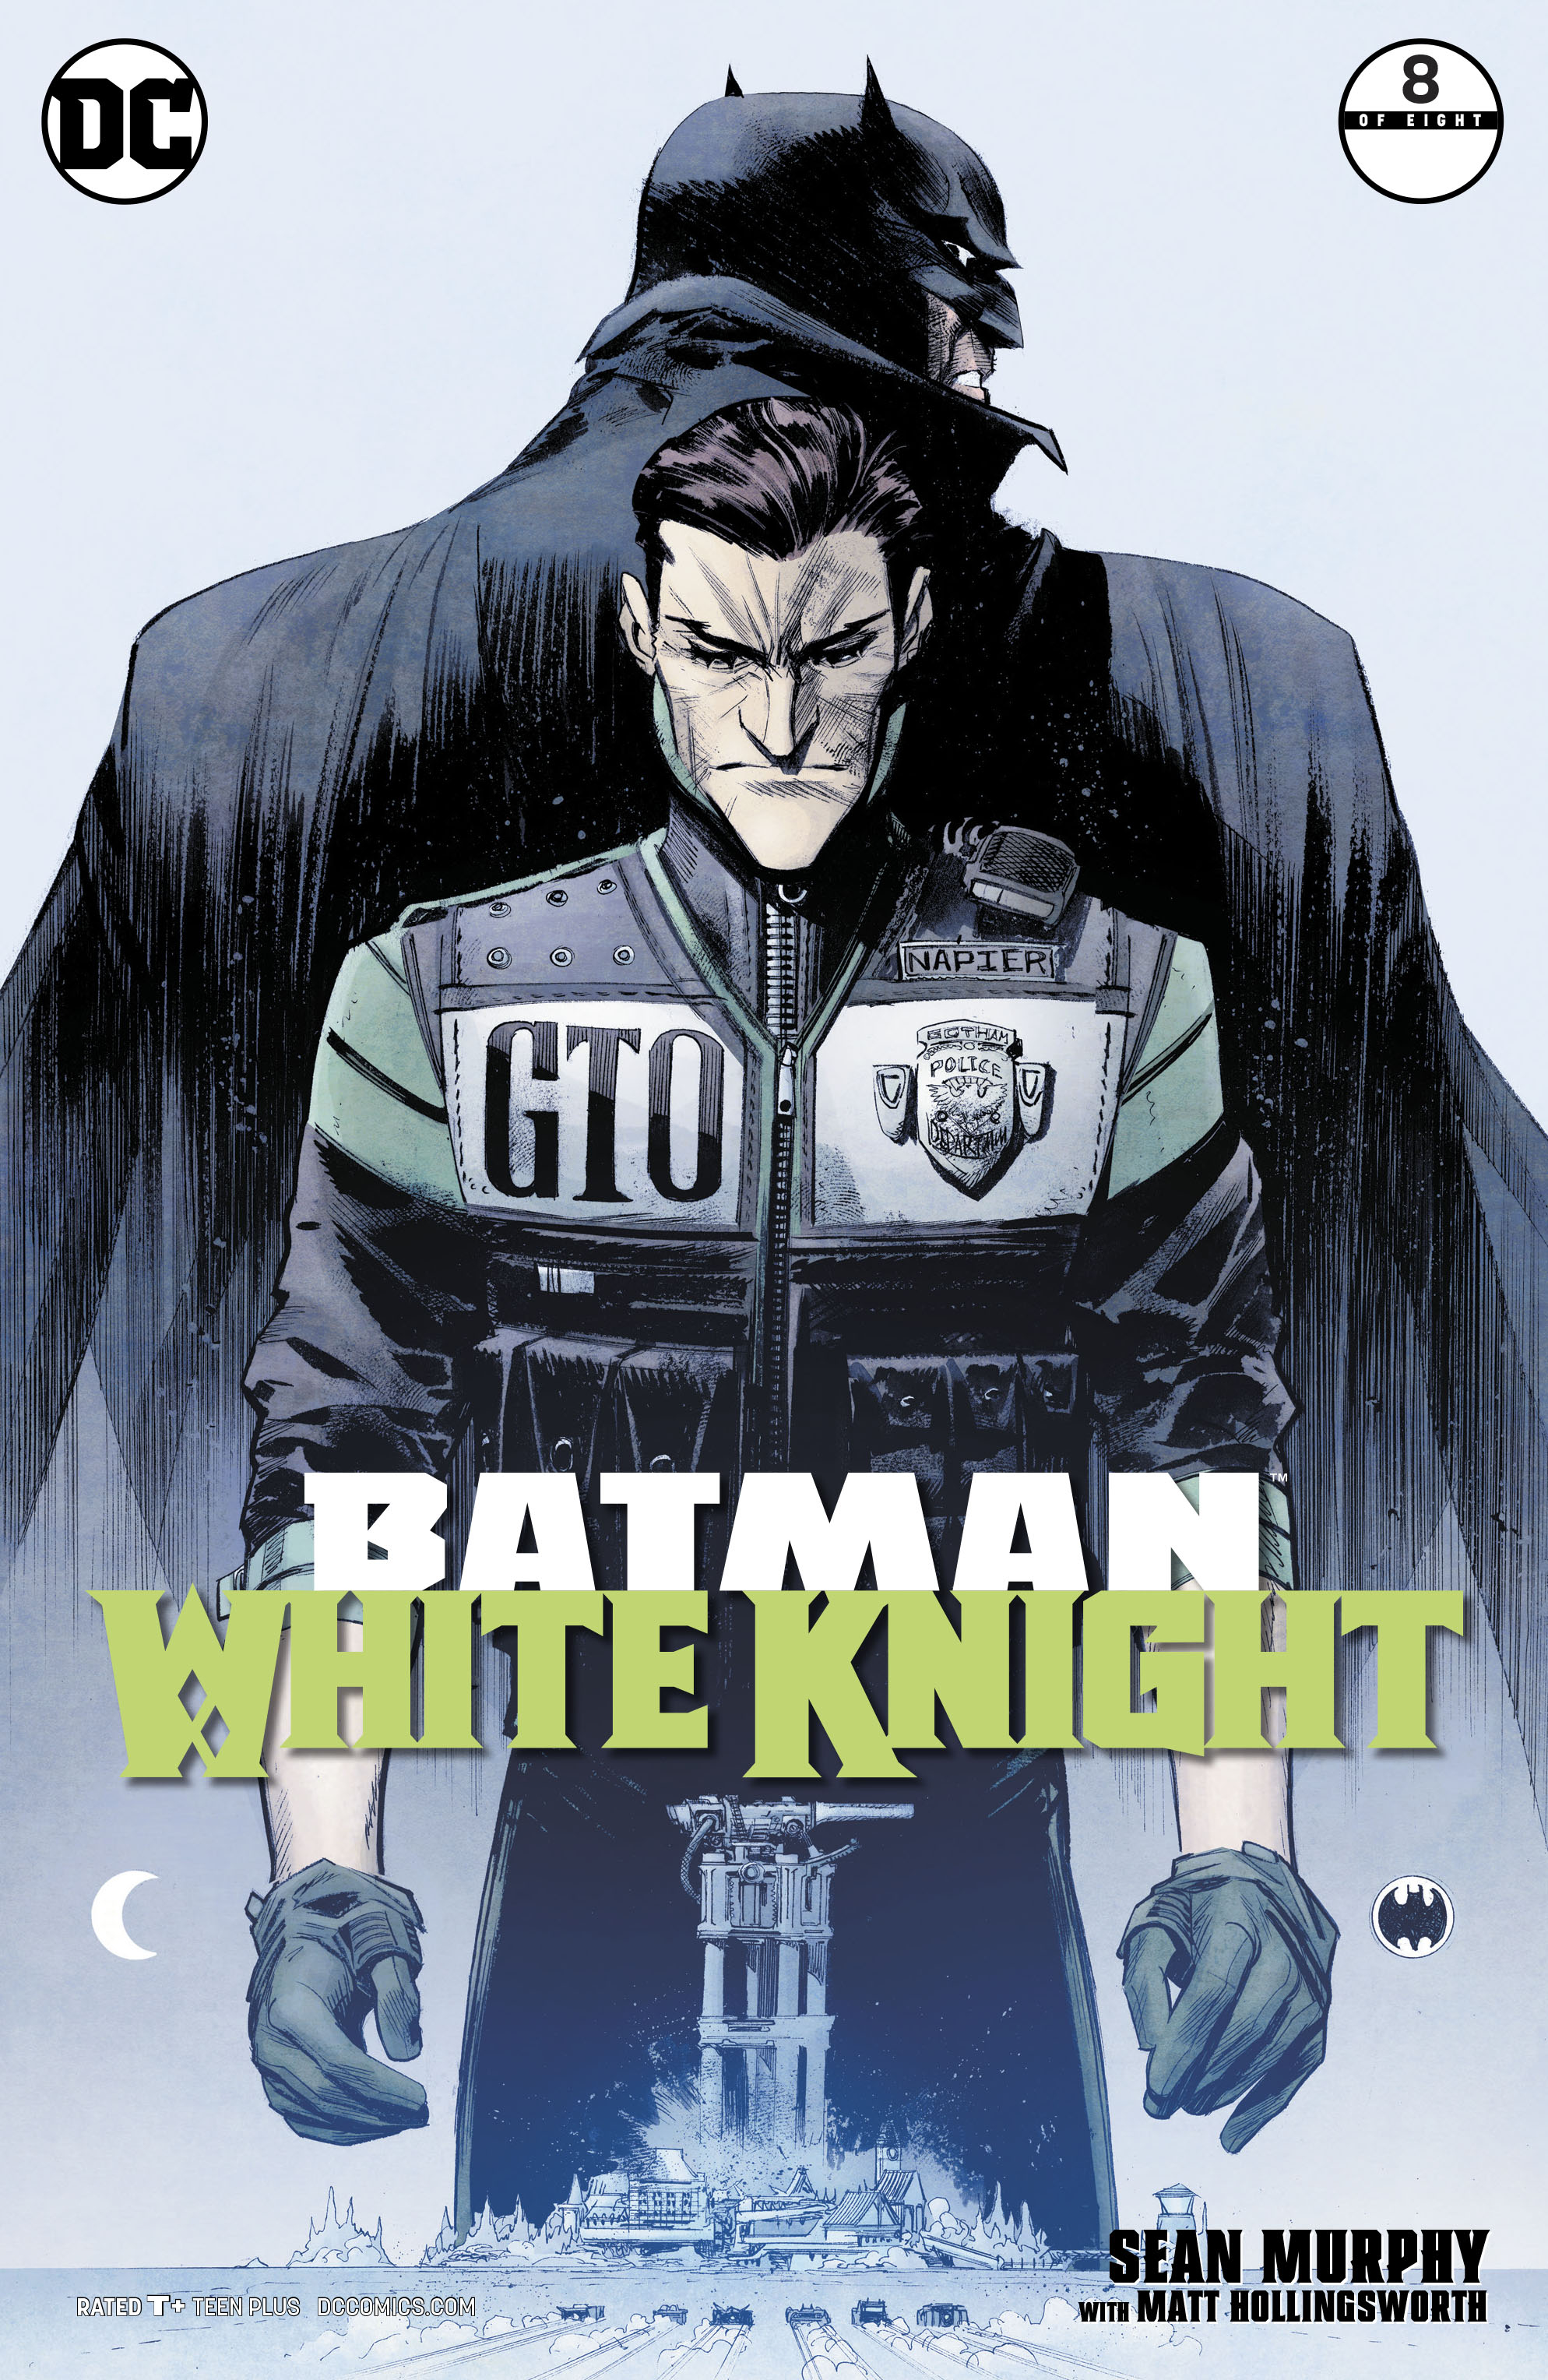 BATMAN WHITE KNIGHT #8 (OF 8)